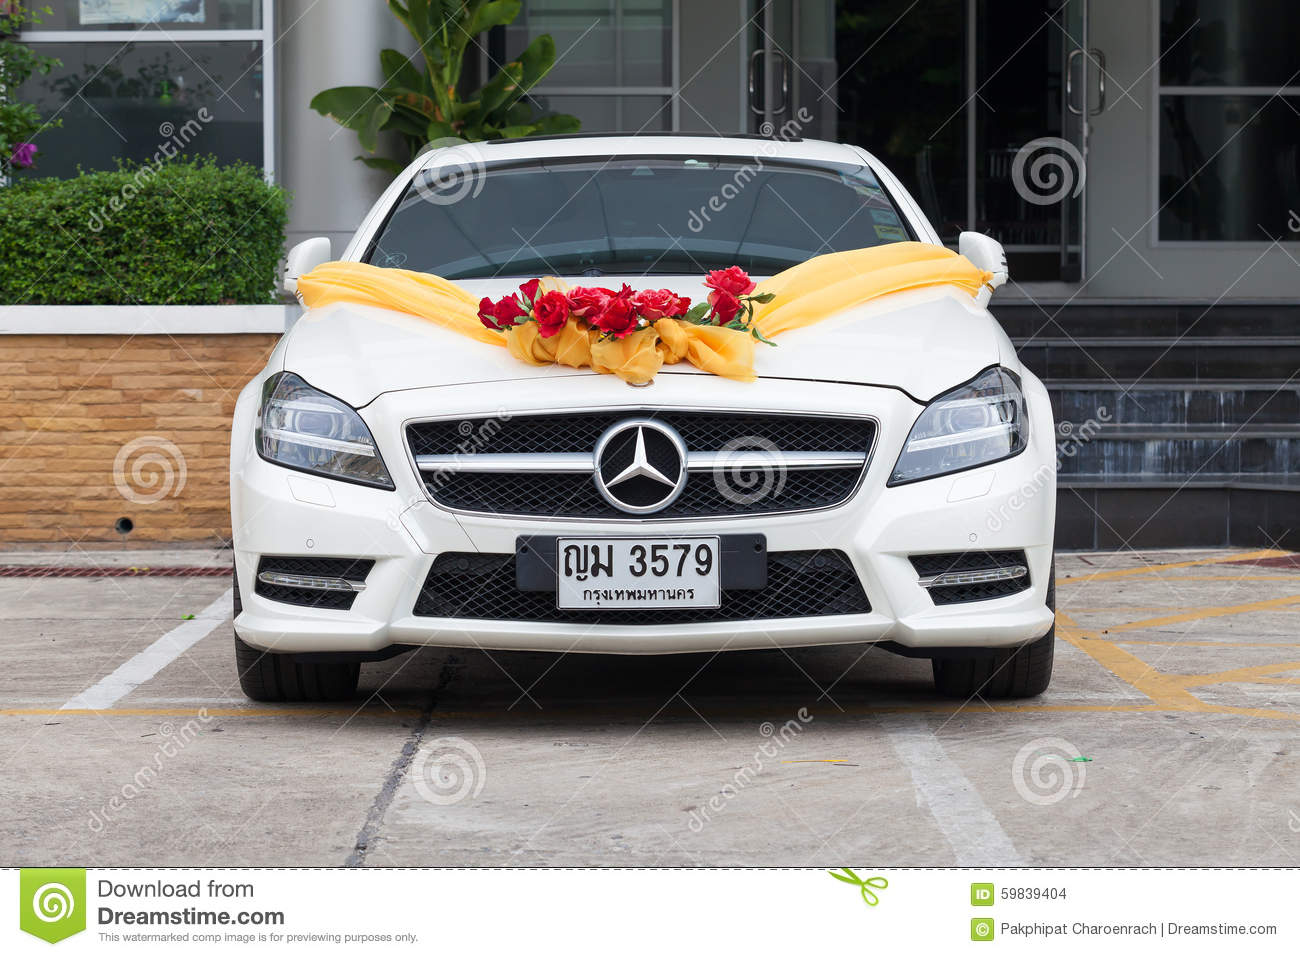 Mercedes benz wedding car in the parking editorial stock for Mercedes benz parking